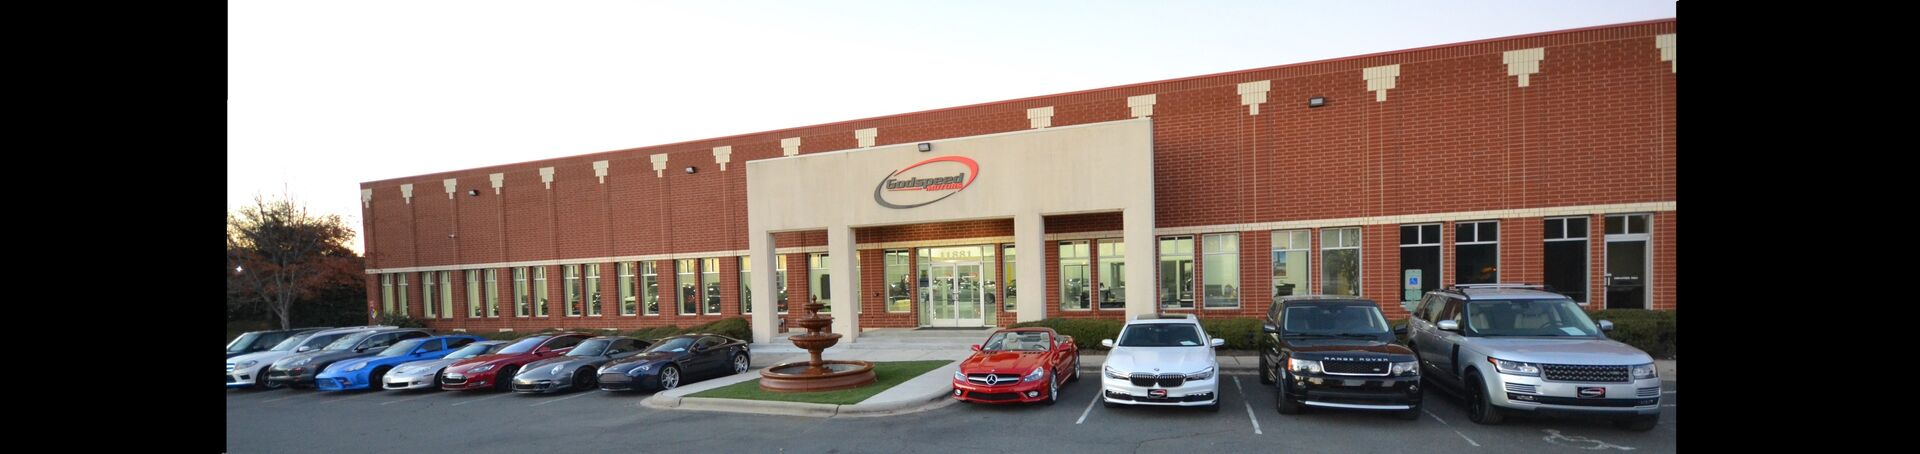 Godspeed Motors Inc Dealership 11881 Vance Davis Dr. Charlotte NC 28269